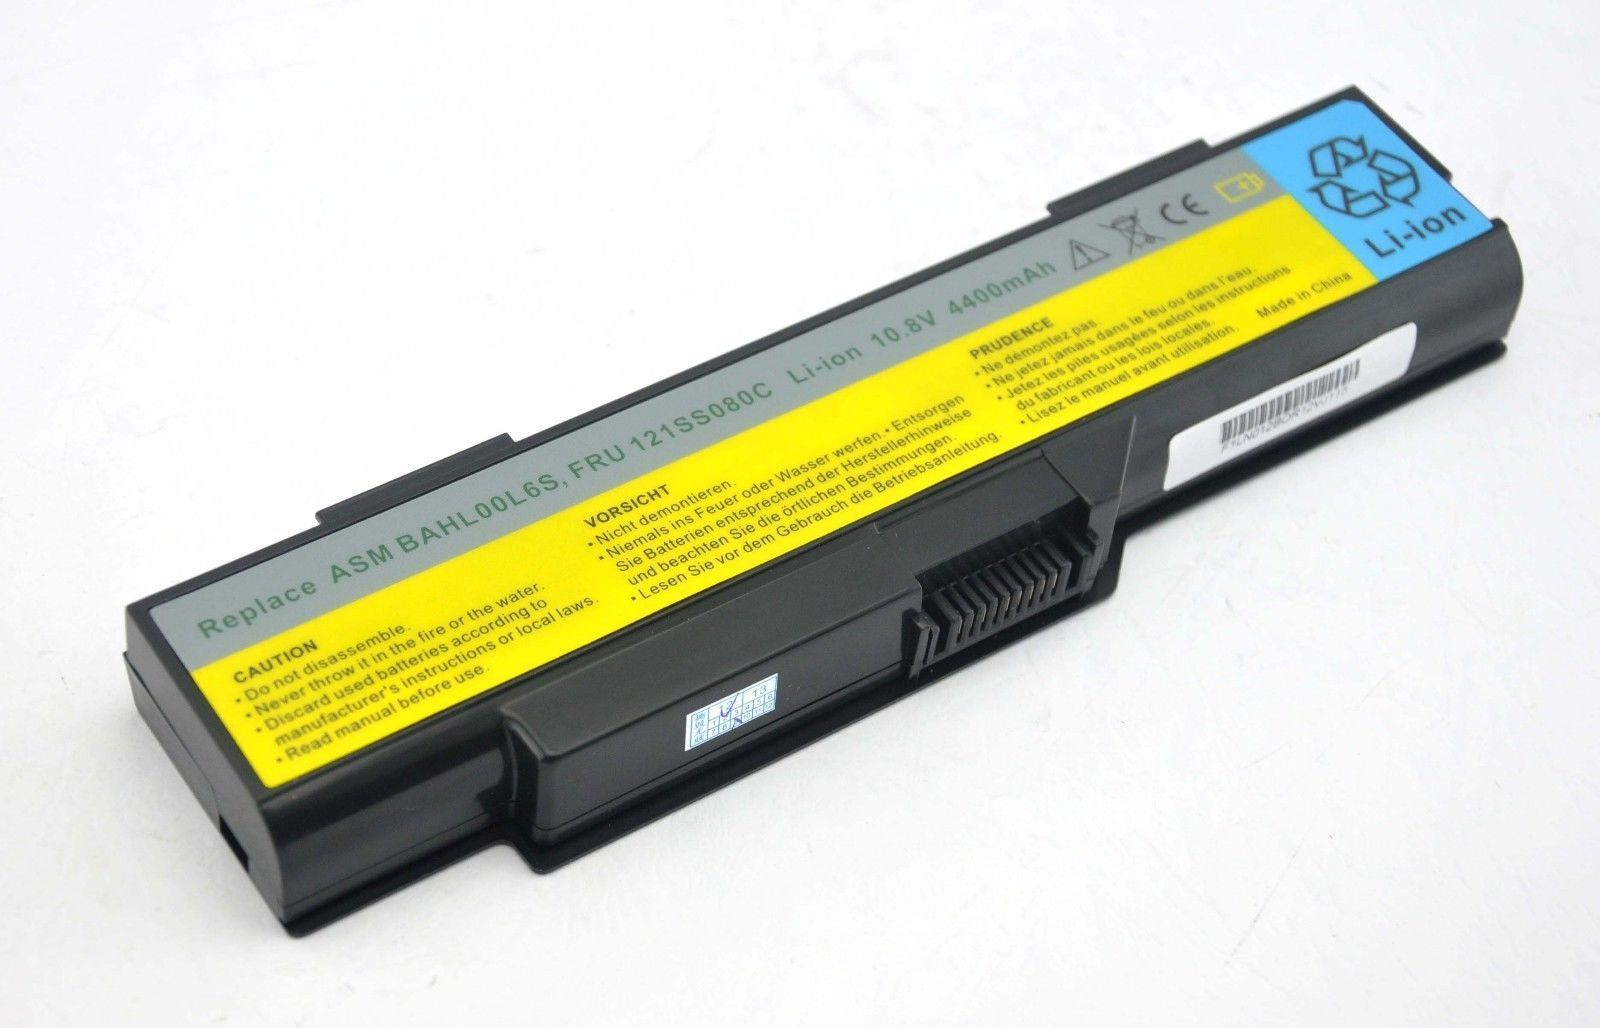 Pin IBM Lenovo - Battery IBM Lenovo G400 G410